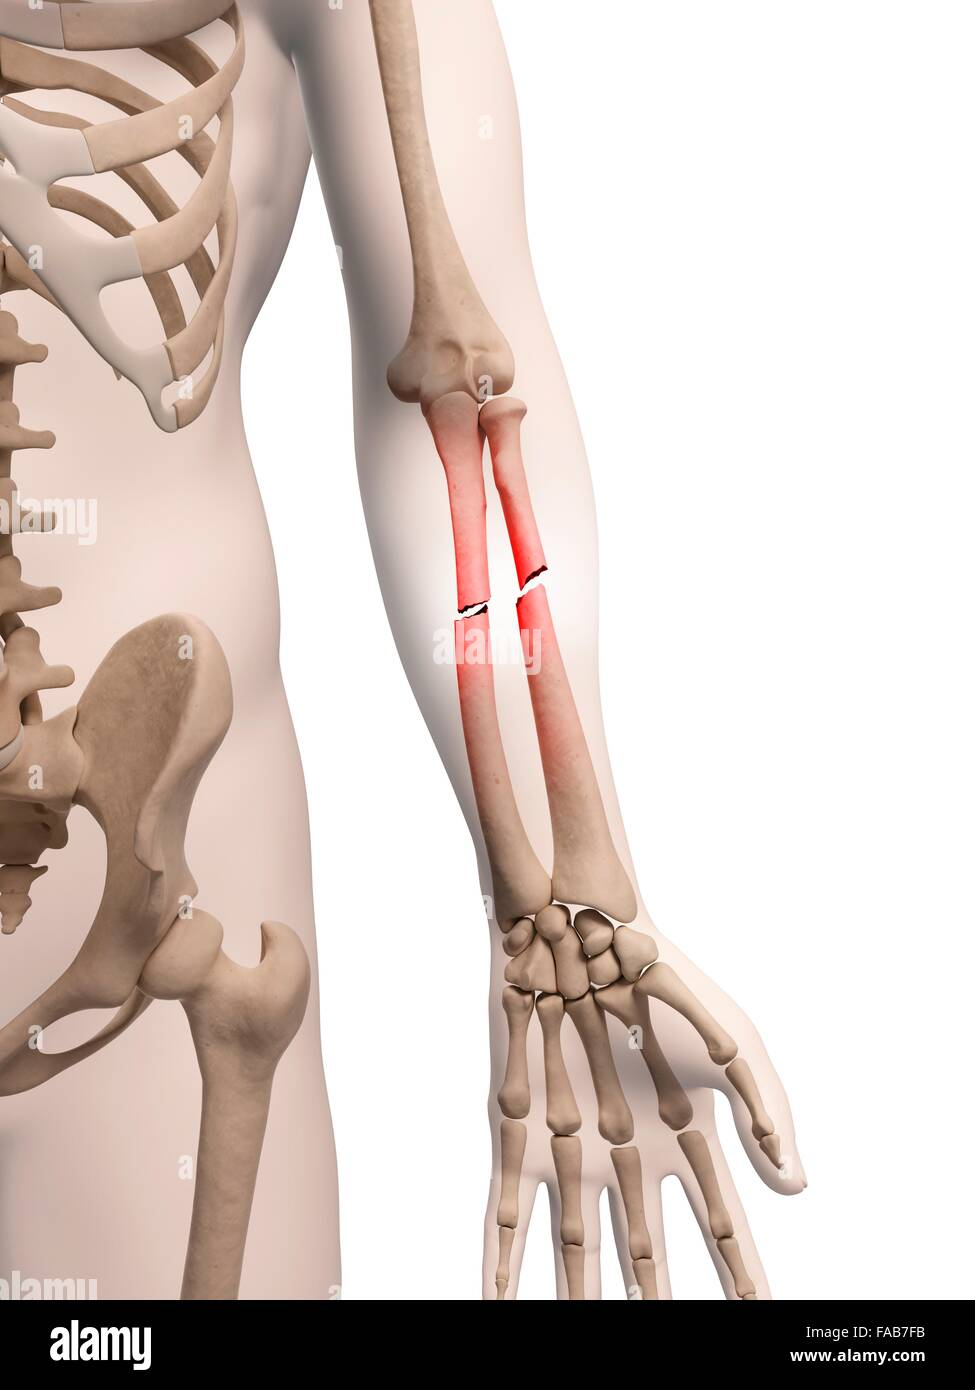 Broken Bones Stockfotos & Broken Bones Bilder - Alamy